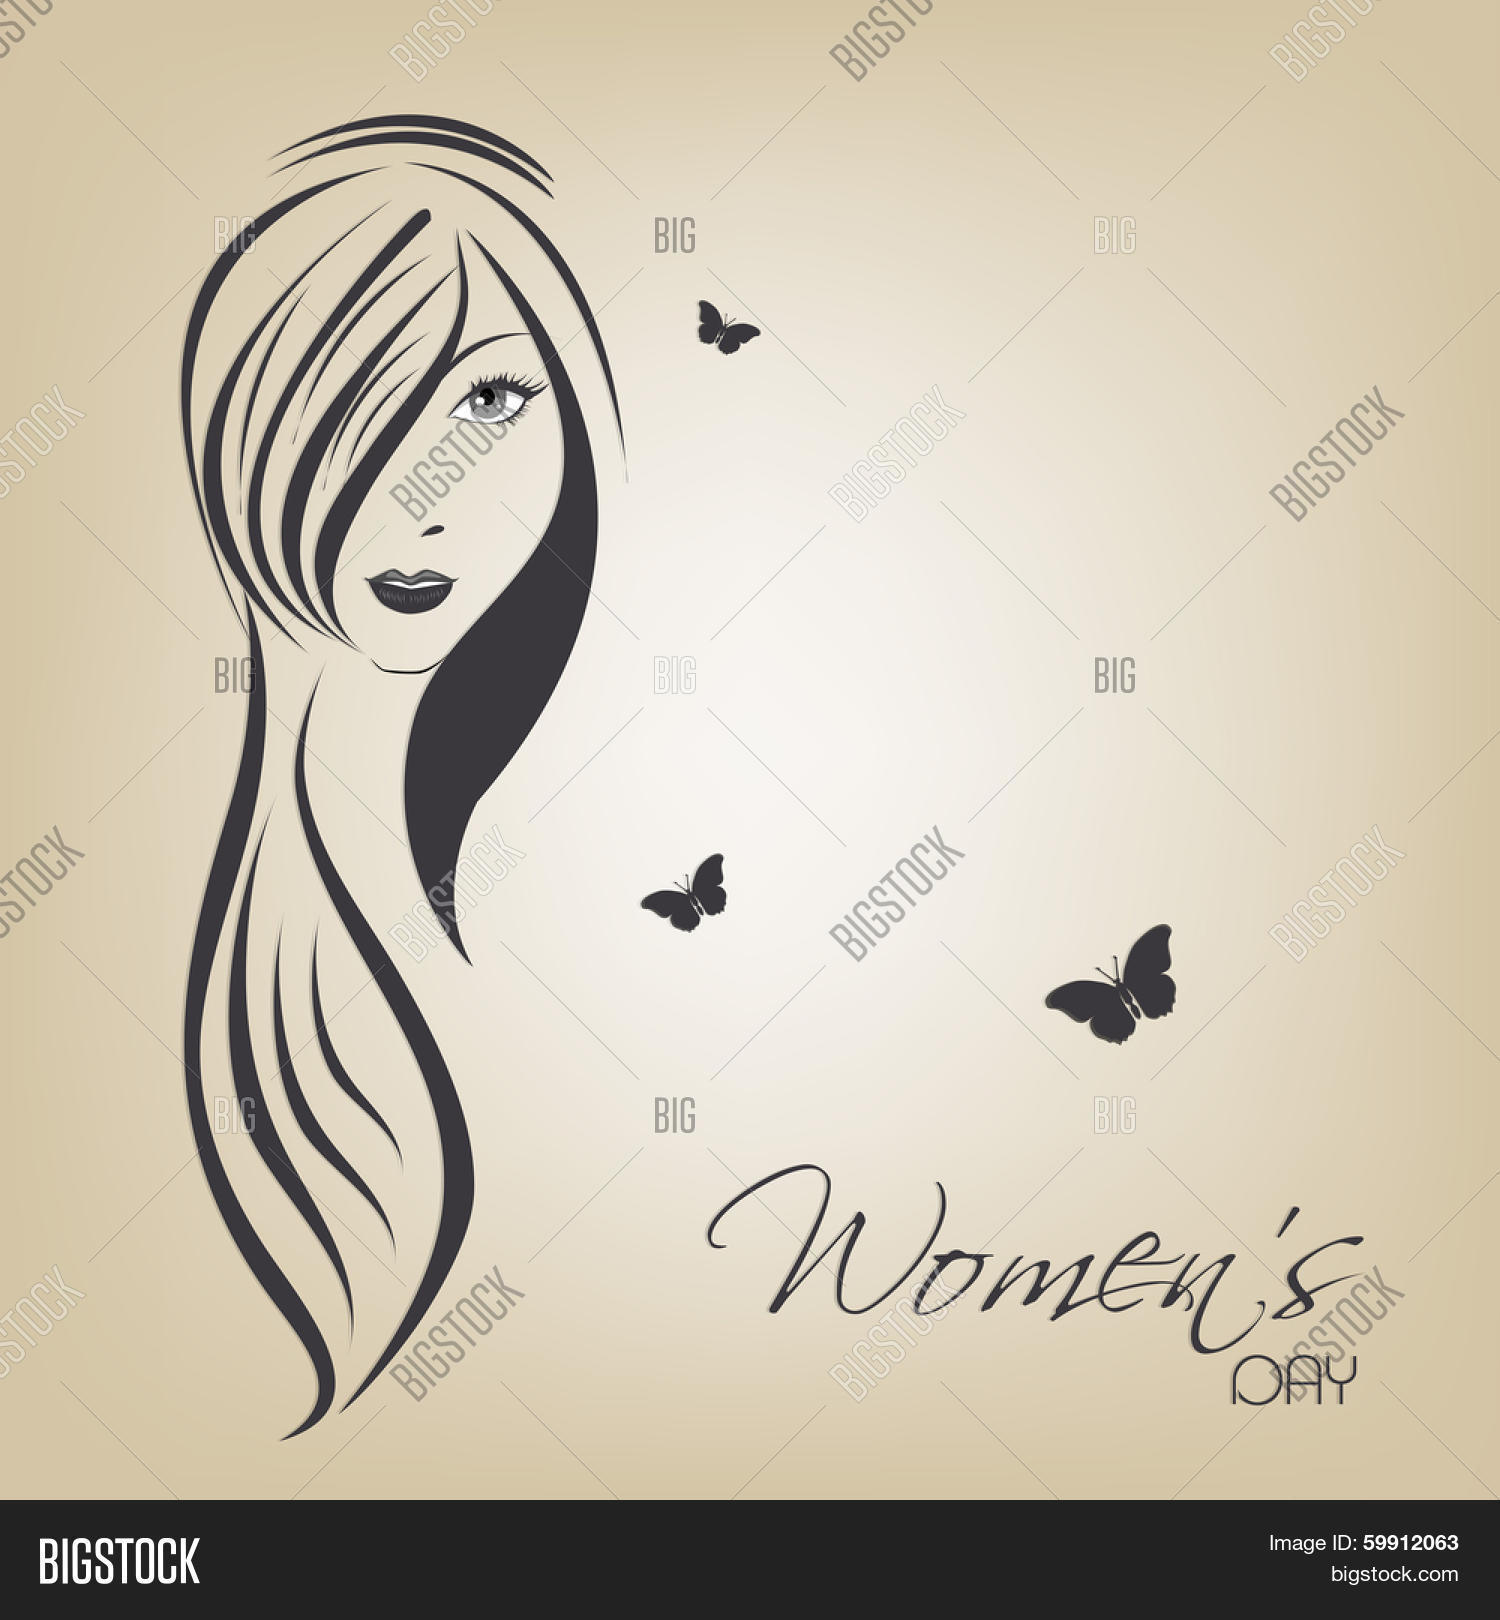 Happy Womens Day Image Photo Free Trial Bigstock